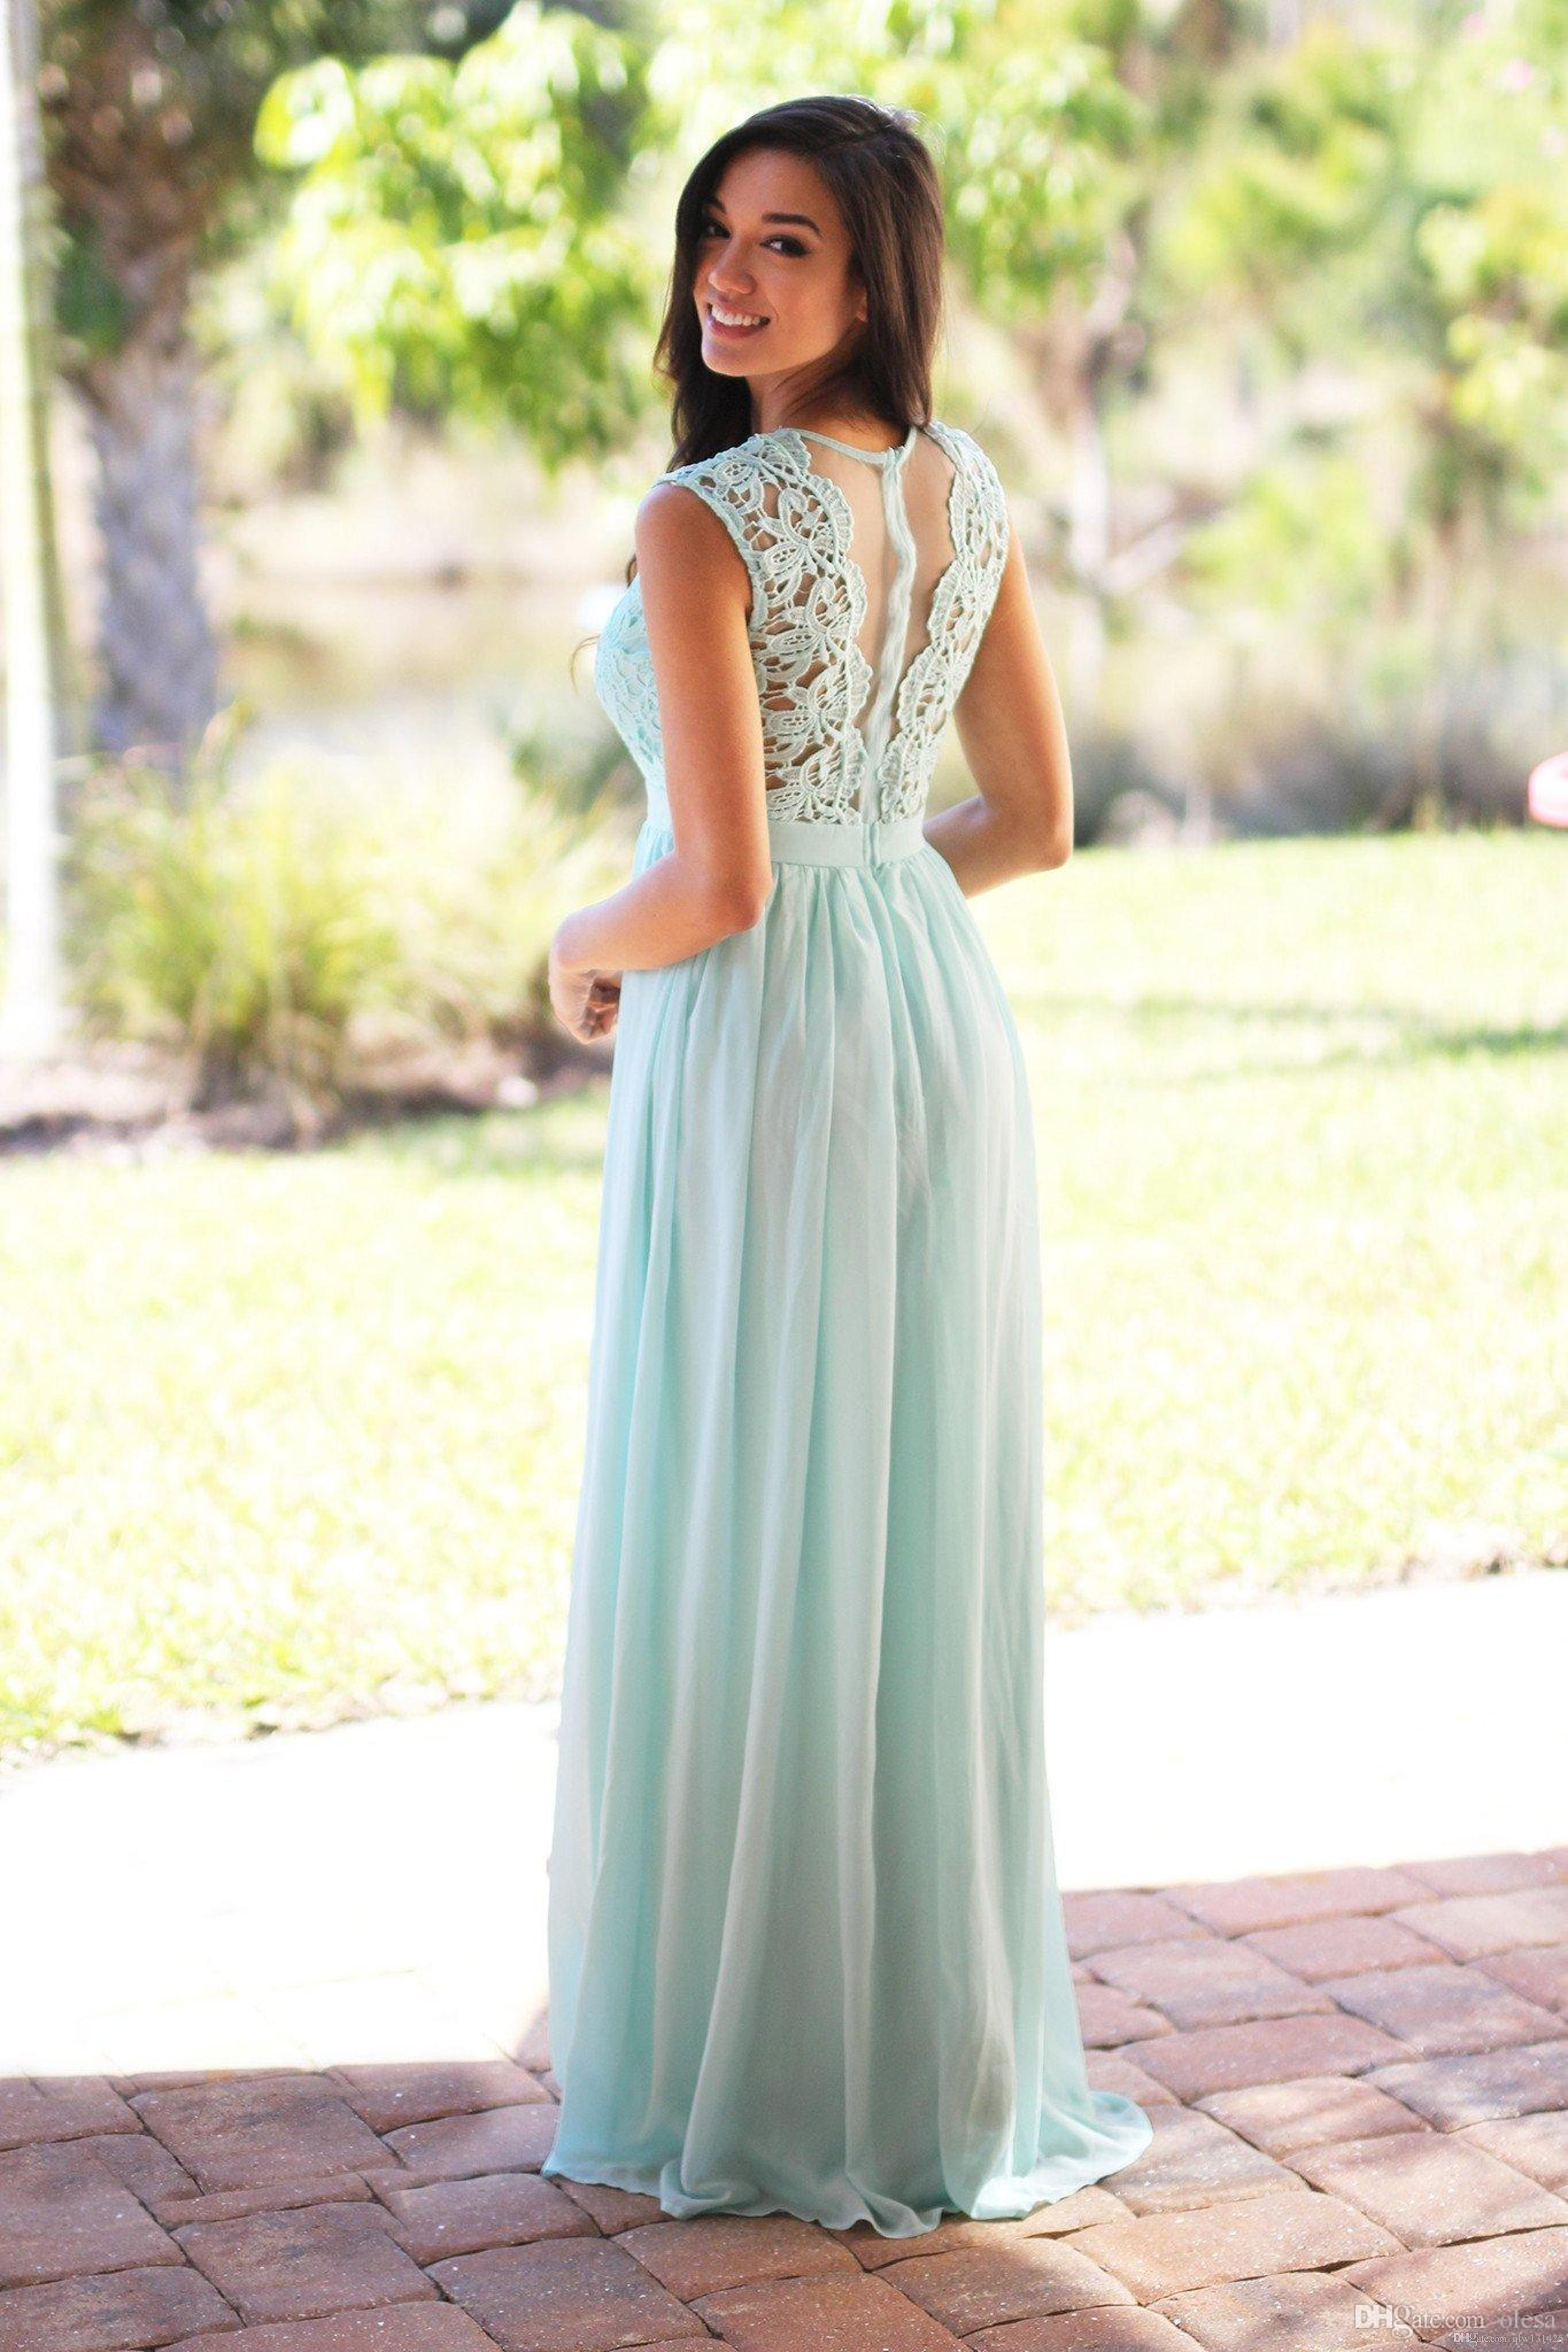 Mint blue bridesmaid dresses 2017 lace top a line long chiffon mint blue bridesmaid dresses 2017 lace top a line long chiffon maid of honor gowns boho cheap wedding party dress be96 bridesmaid dress online with ombrellifo Gallery